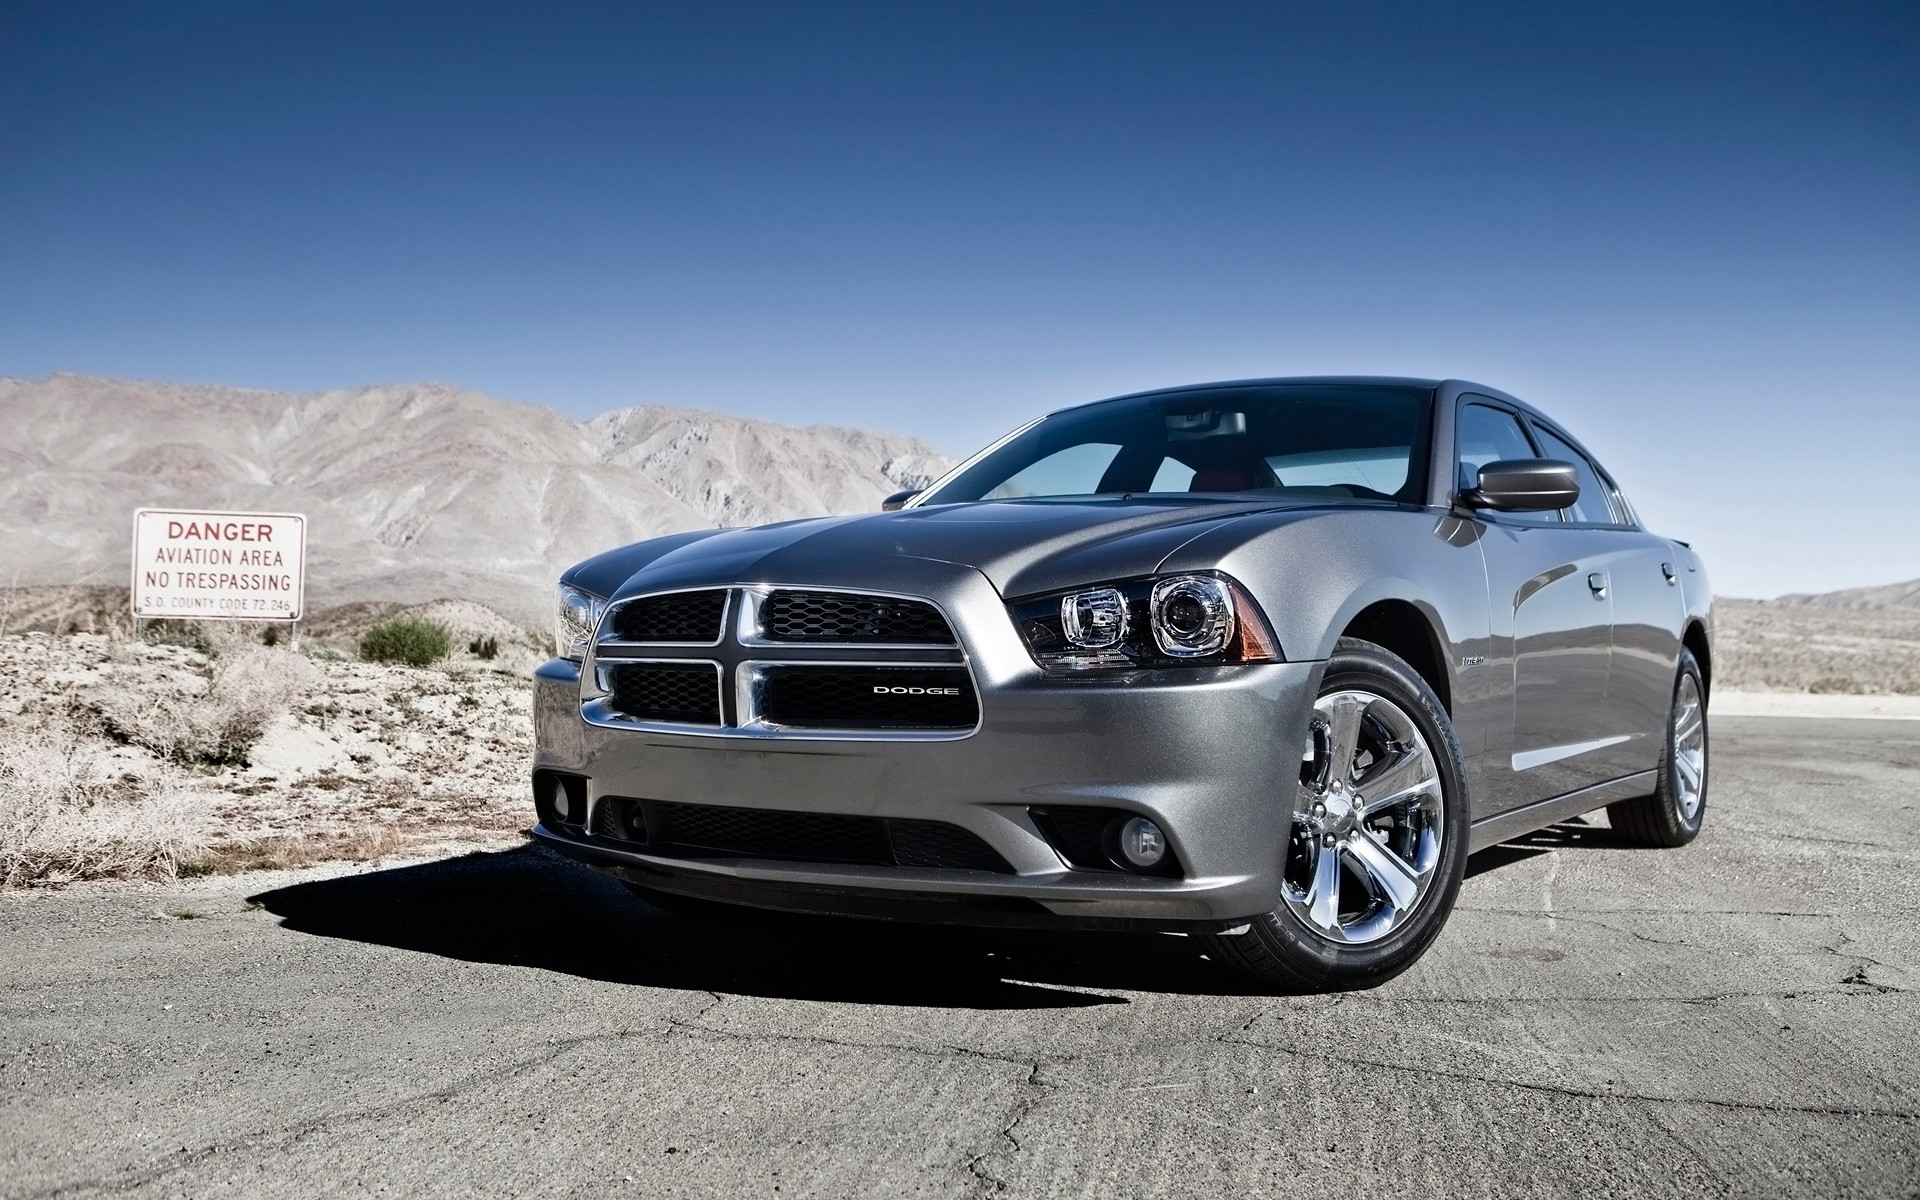 2012 Dodge Charger RT Wallpaper | HD Car Wallpapers